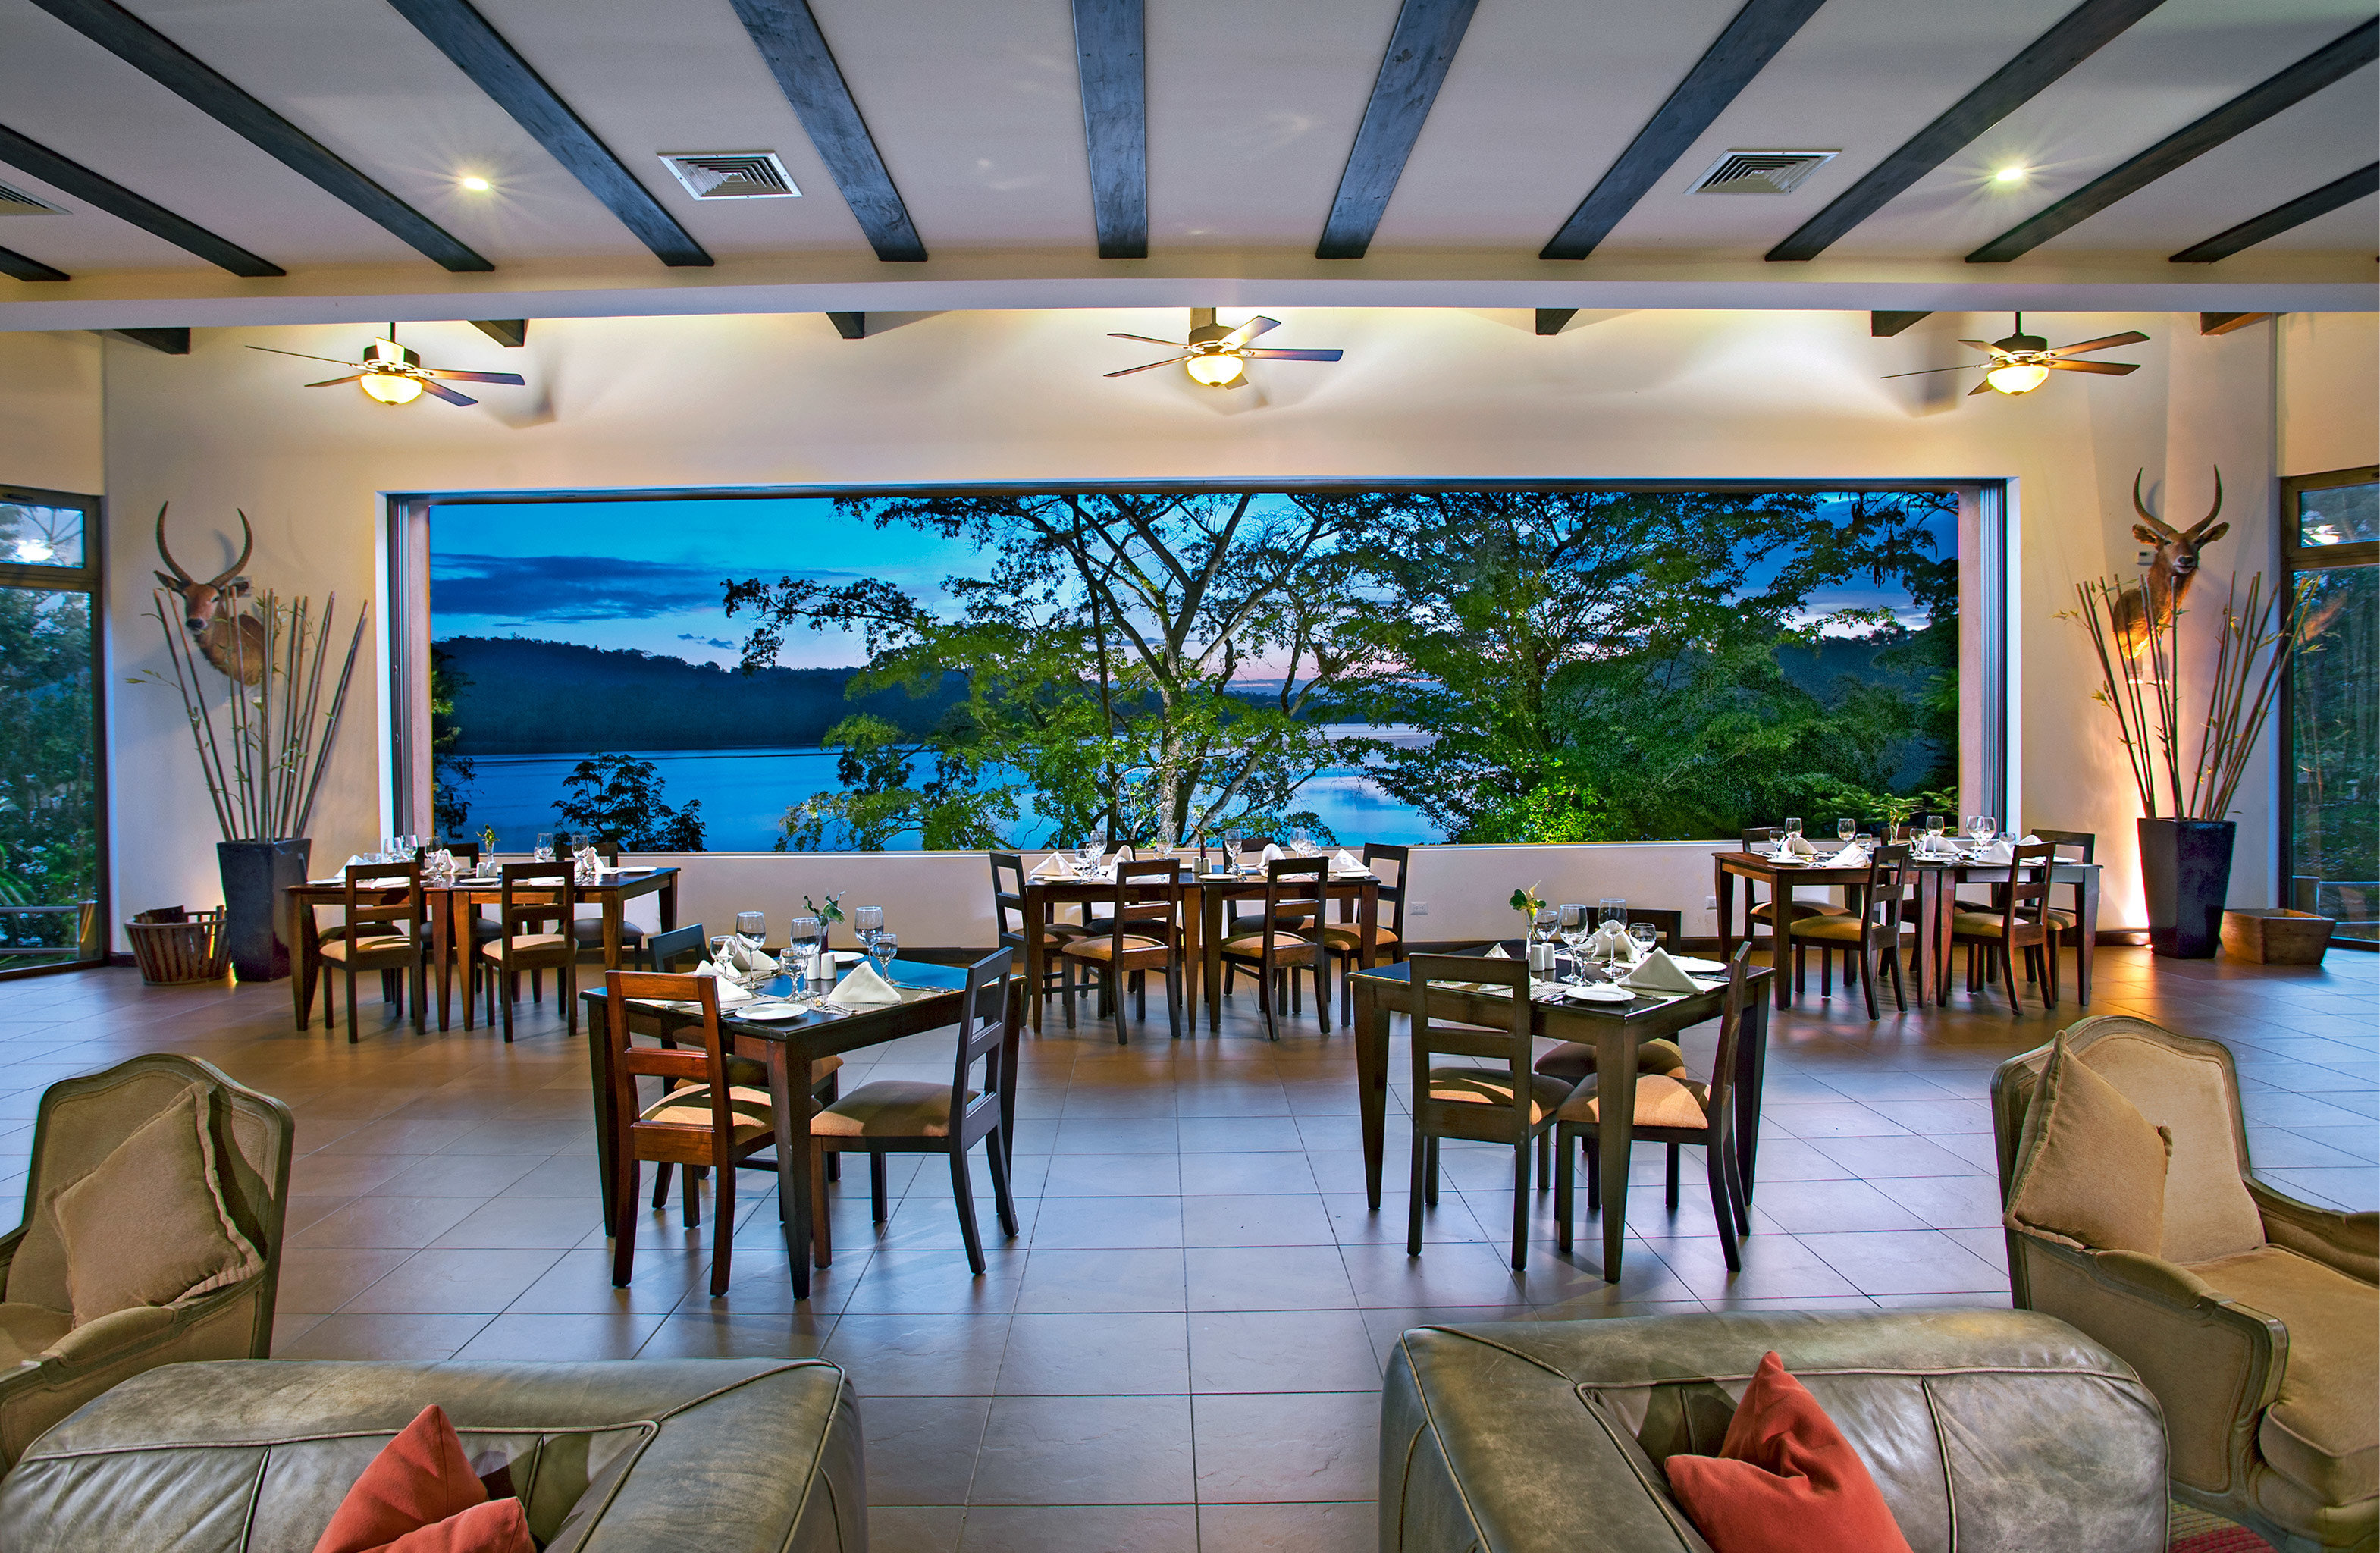 Bar Dining Drink Eat Ocean Patio Scenic views Waterfront chair property Resort restaurant function hall Villa convention center